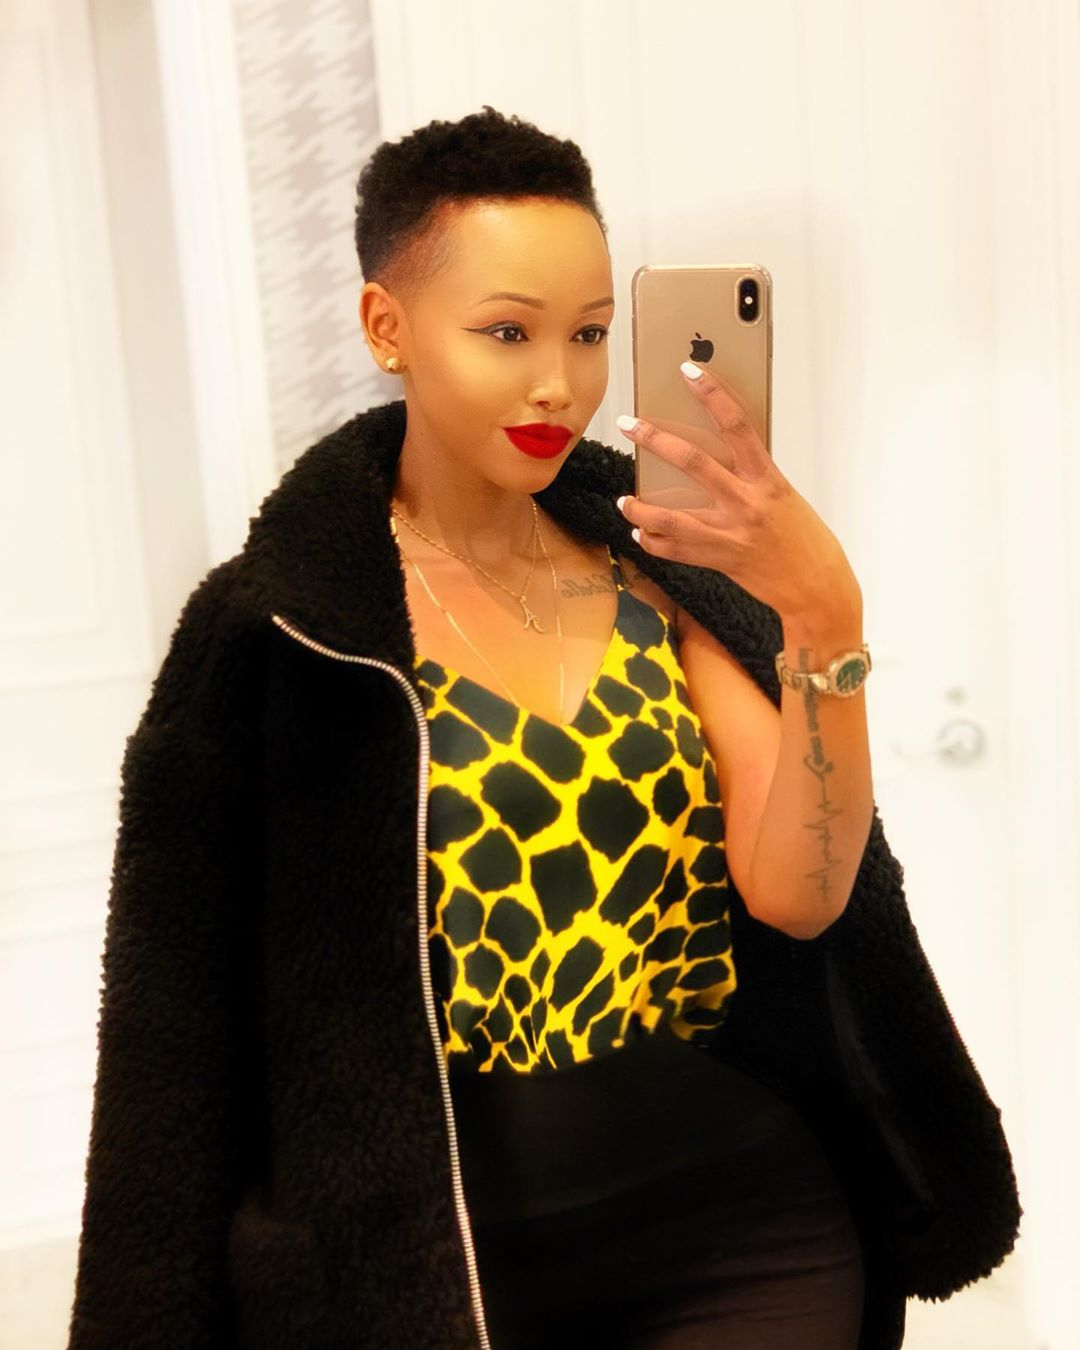 60429238 1966948060075992 1338622149494130594 n - 'Pudesh doesn't pay especially here in America,' says Huddah Monroe